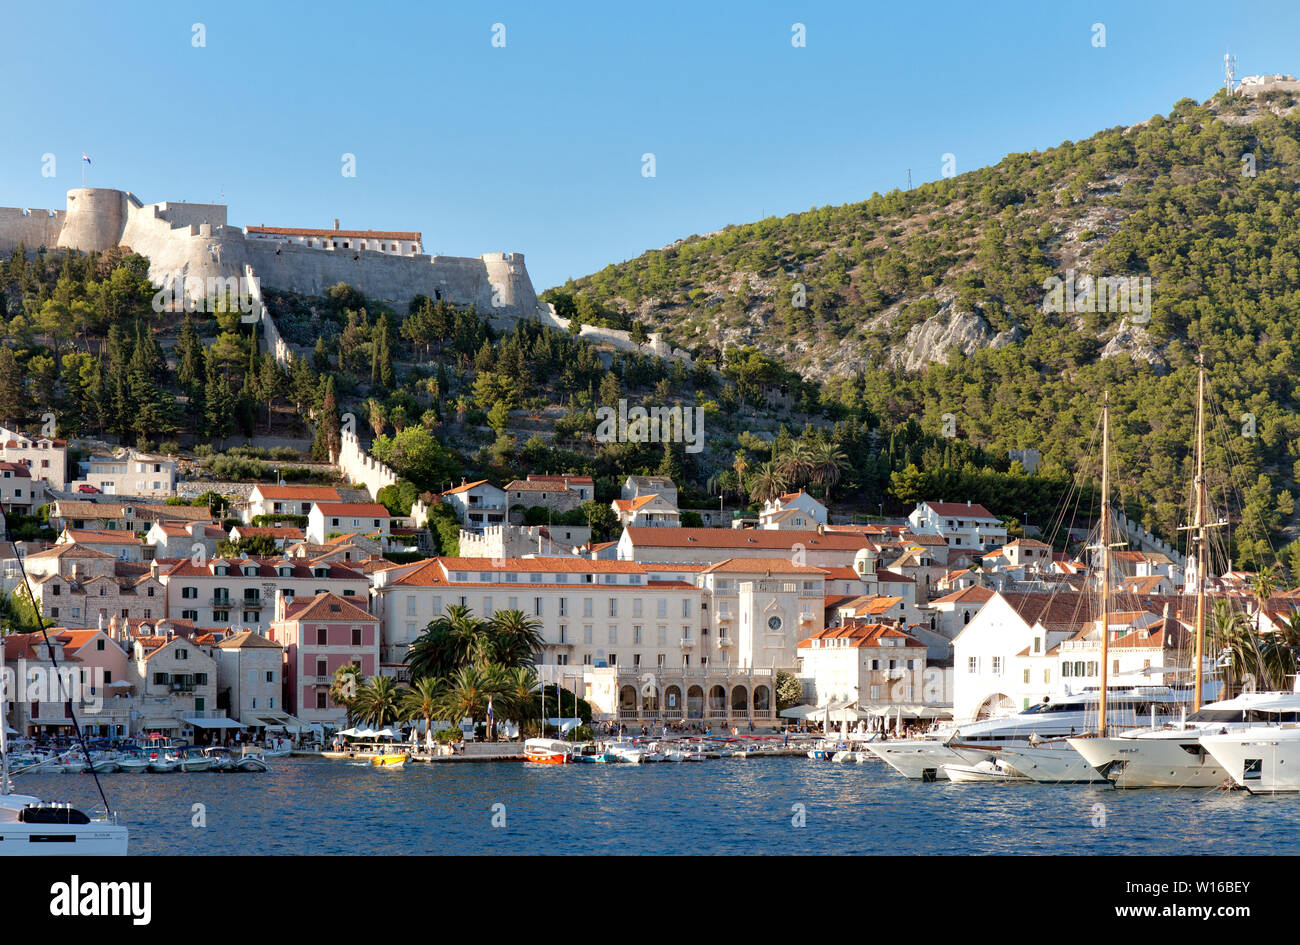 Hvar Town and its harbor as seen from a sea approach.  This Adriatic playground attracts celebrities and mega-yachts. Stock Photo